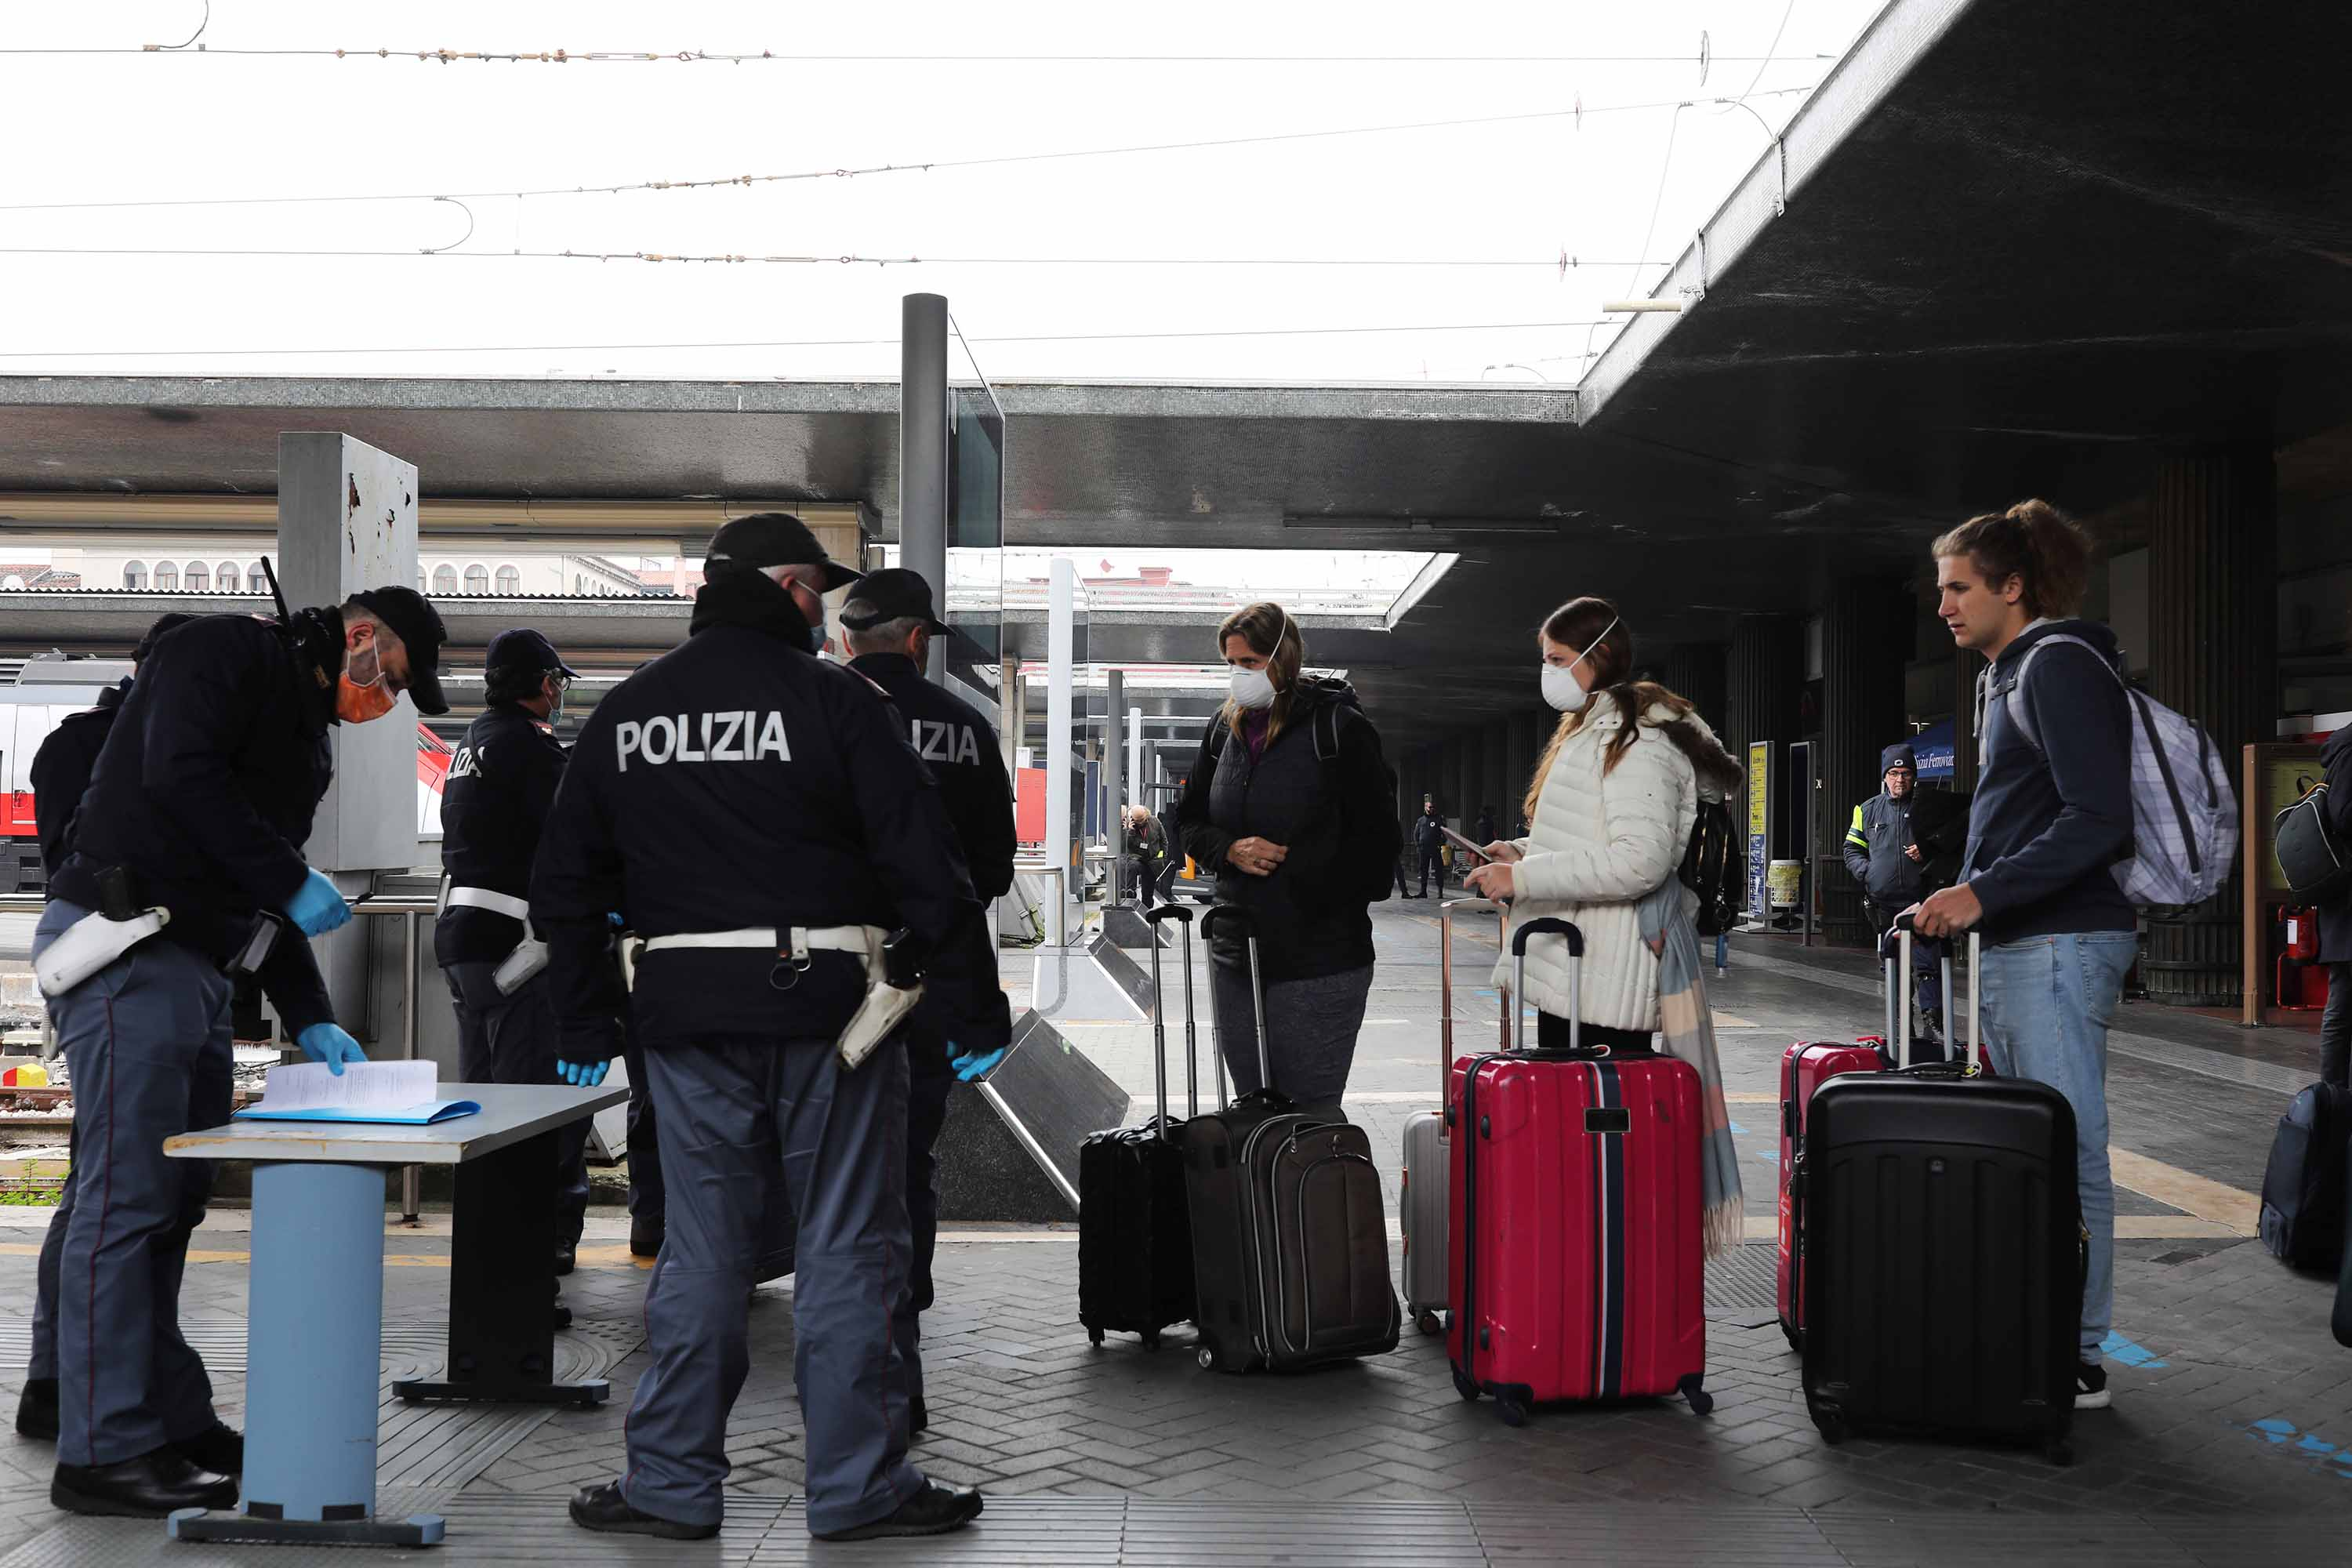 Police officers check travelers at the Venice Santa Lucia railway station on Tuesday.